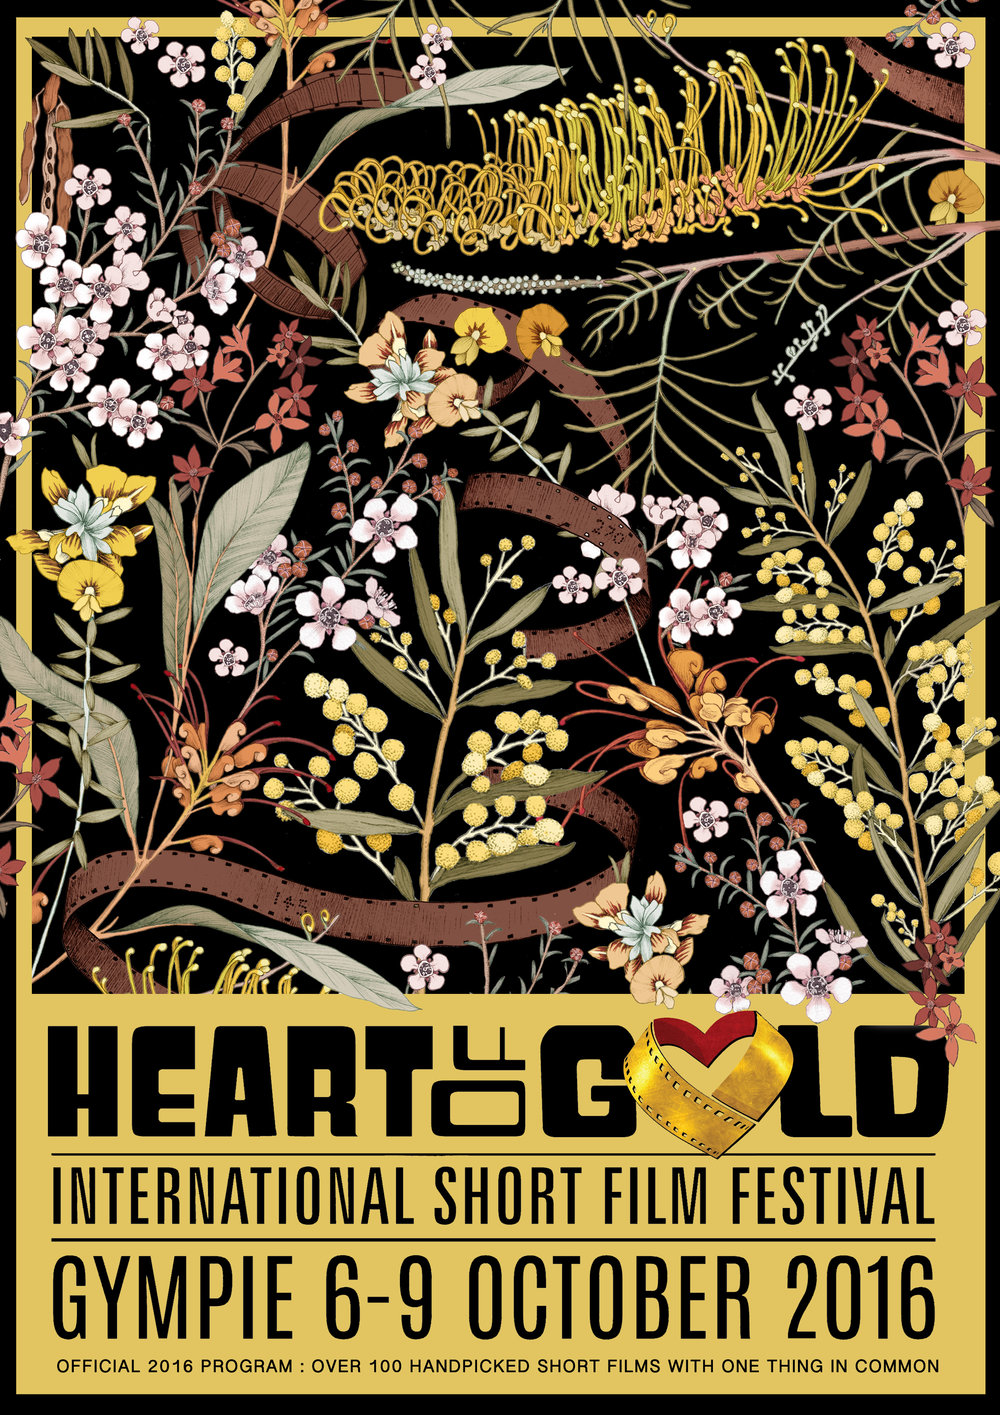 Heart of Gold International Short Film Festival : Poster/Artwork Design